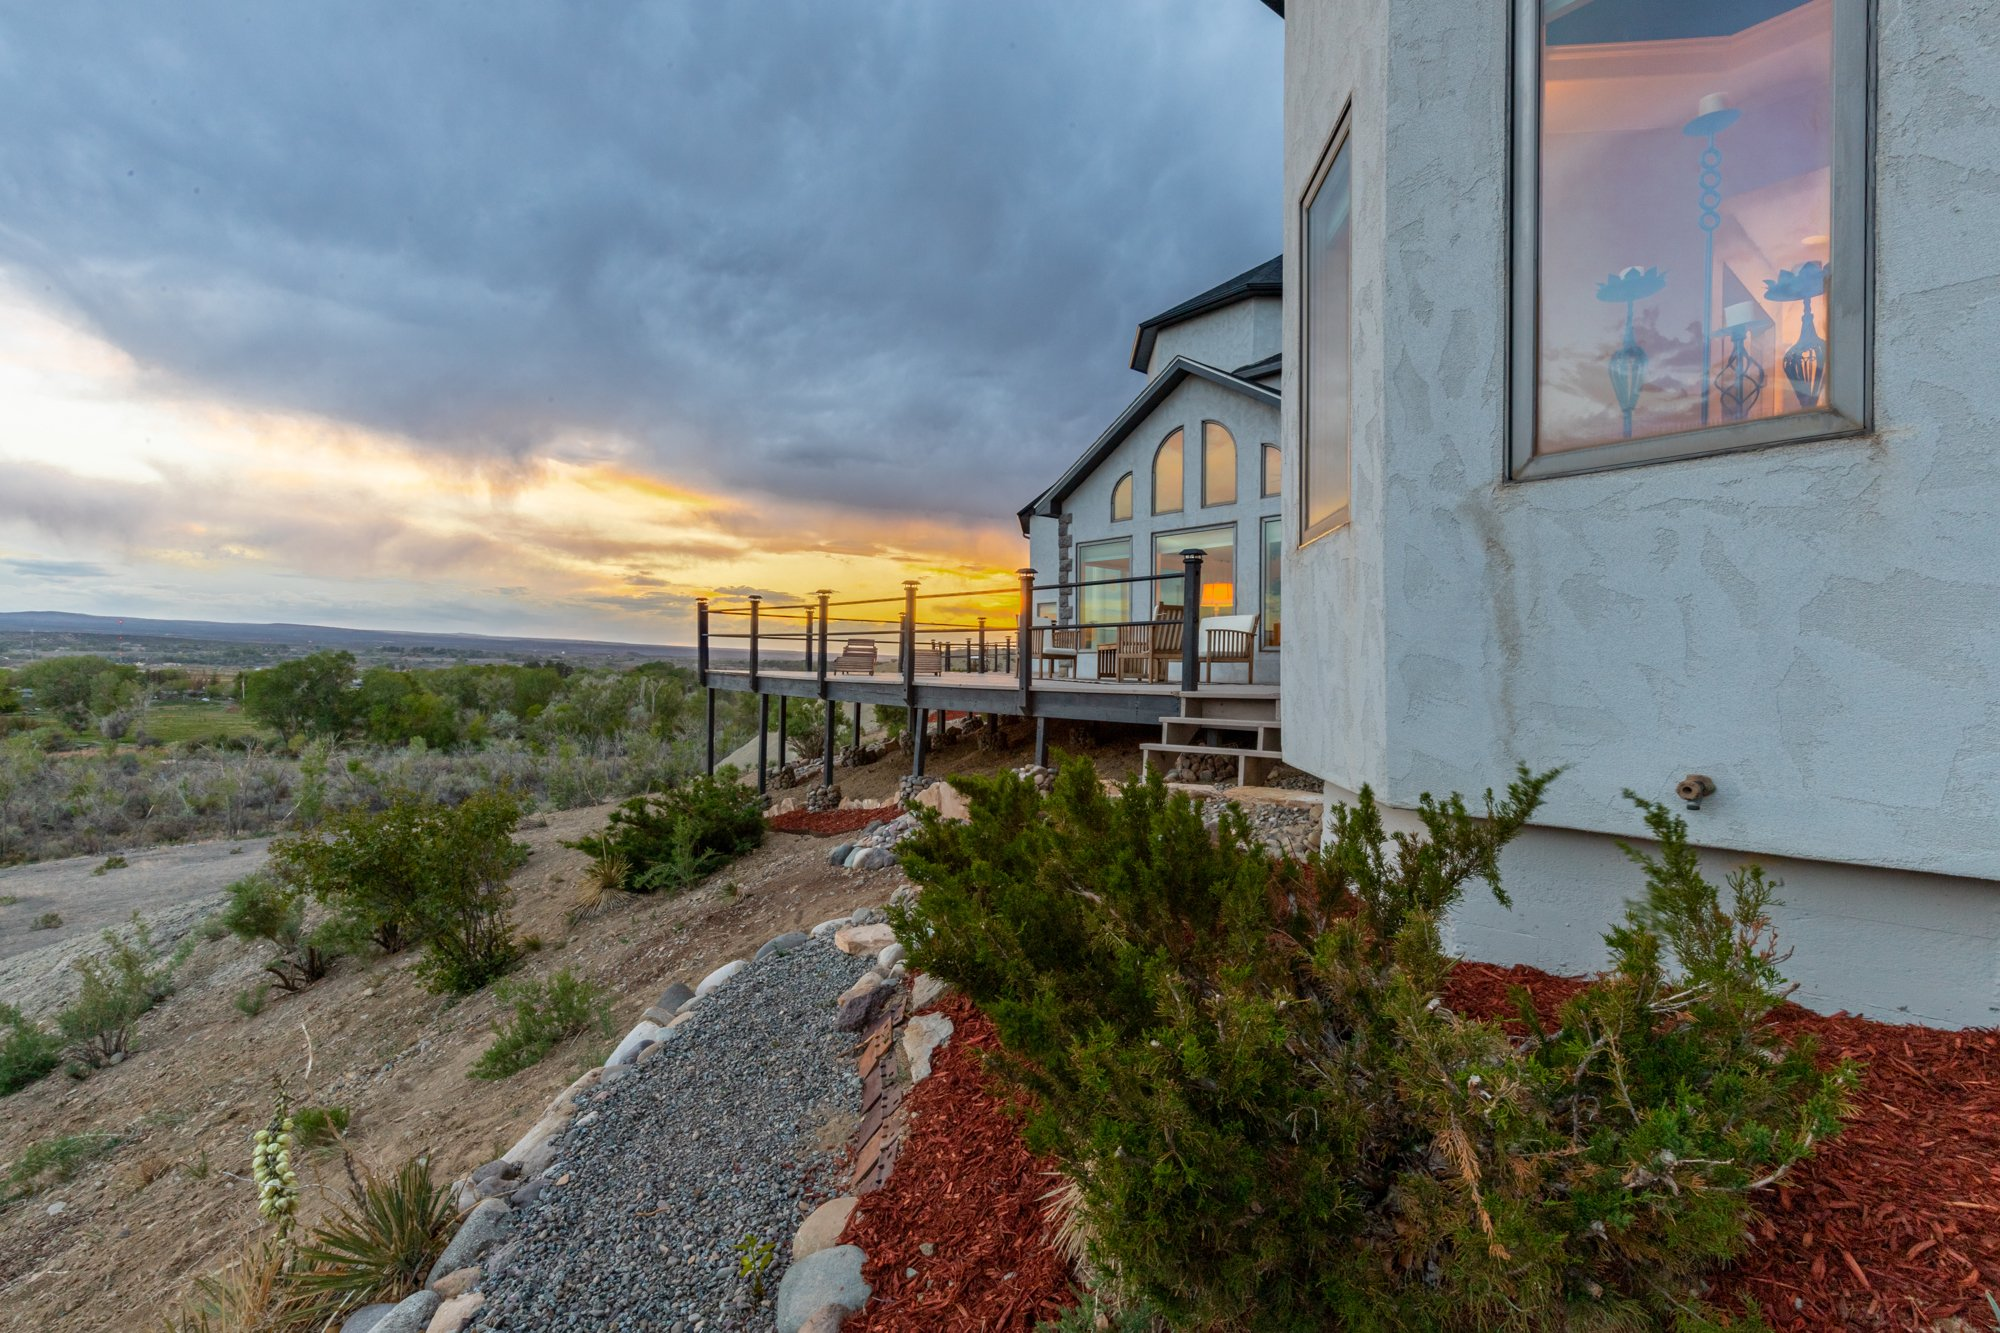 Extensive Landscaping - 16955 Wildwood Dr. Montrose, CO 81403 - Atha Team Luxury Real Estate